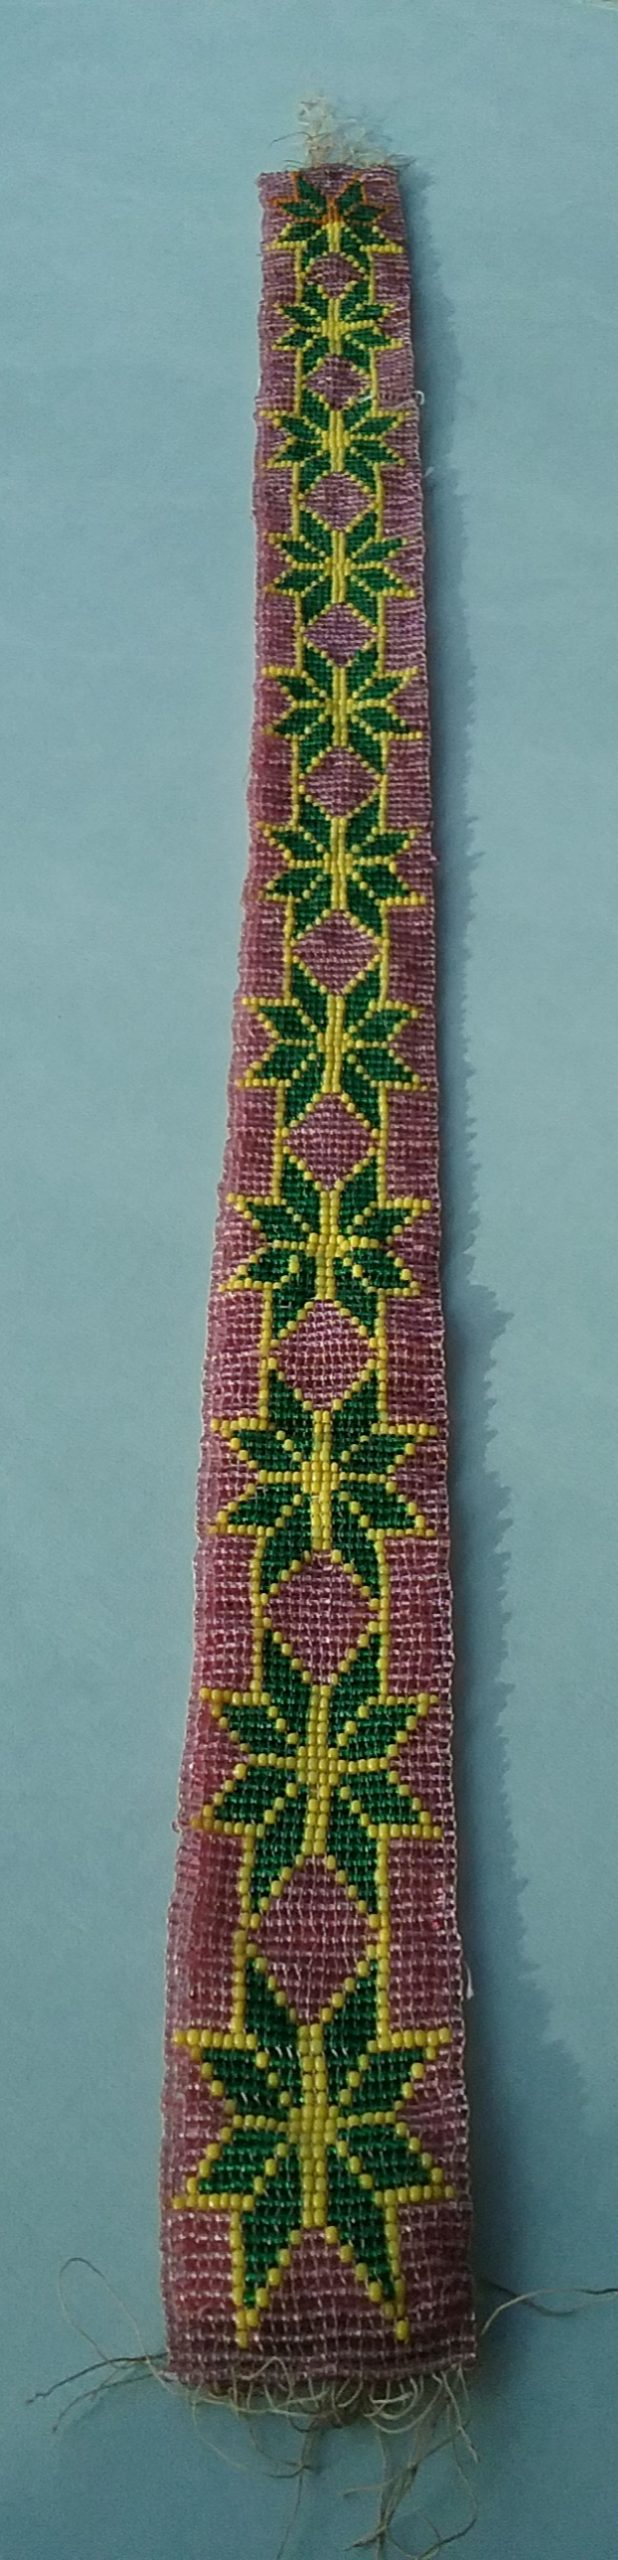 Beaded band: Loom-woven beaded band with pink, green, and yellow seed beads. From the Hill & Richardson store, c. 1870s. Donated by Mary (Richardson) Harker, daughter of Nathan Richardson. MCHS collections, #1945.76.9.